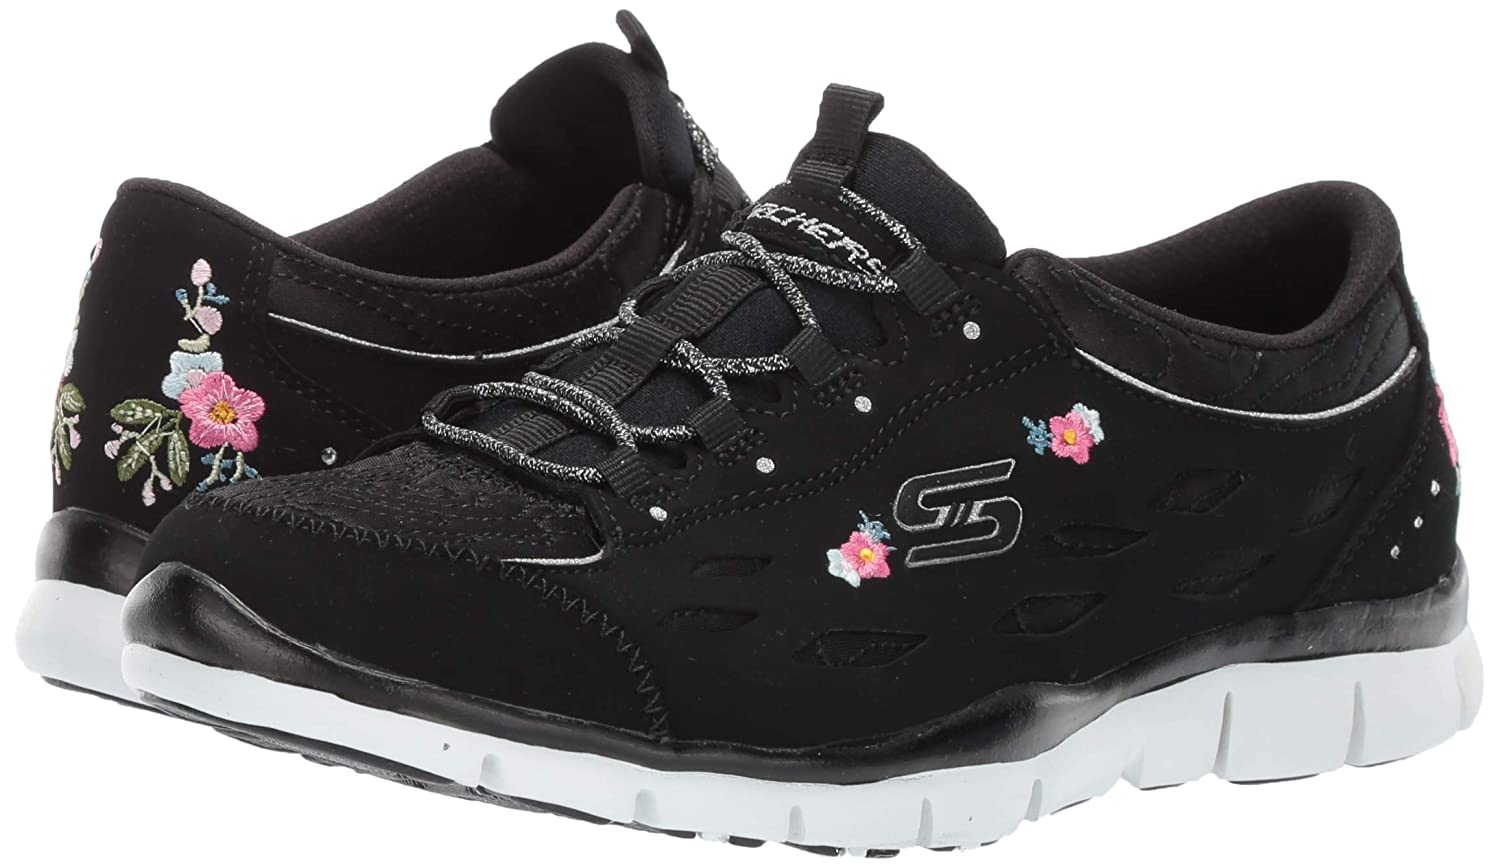 Skechers Women's Gratis Divine Bloom Sneaker